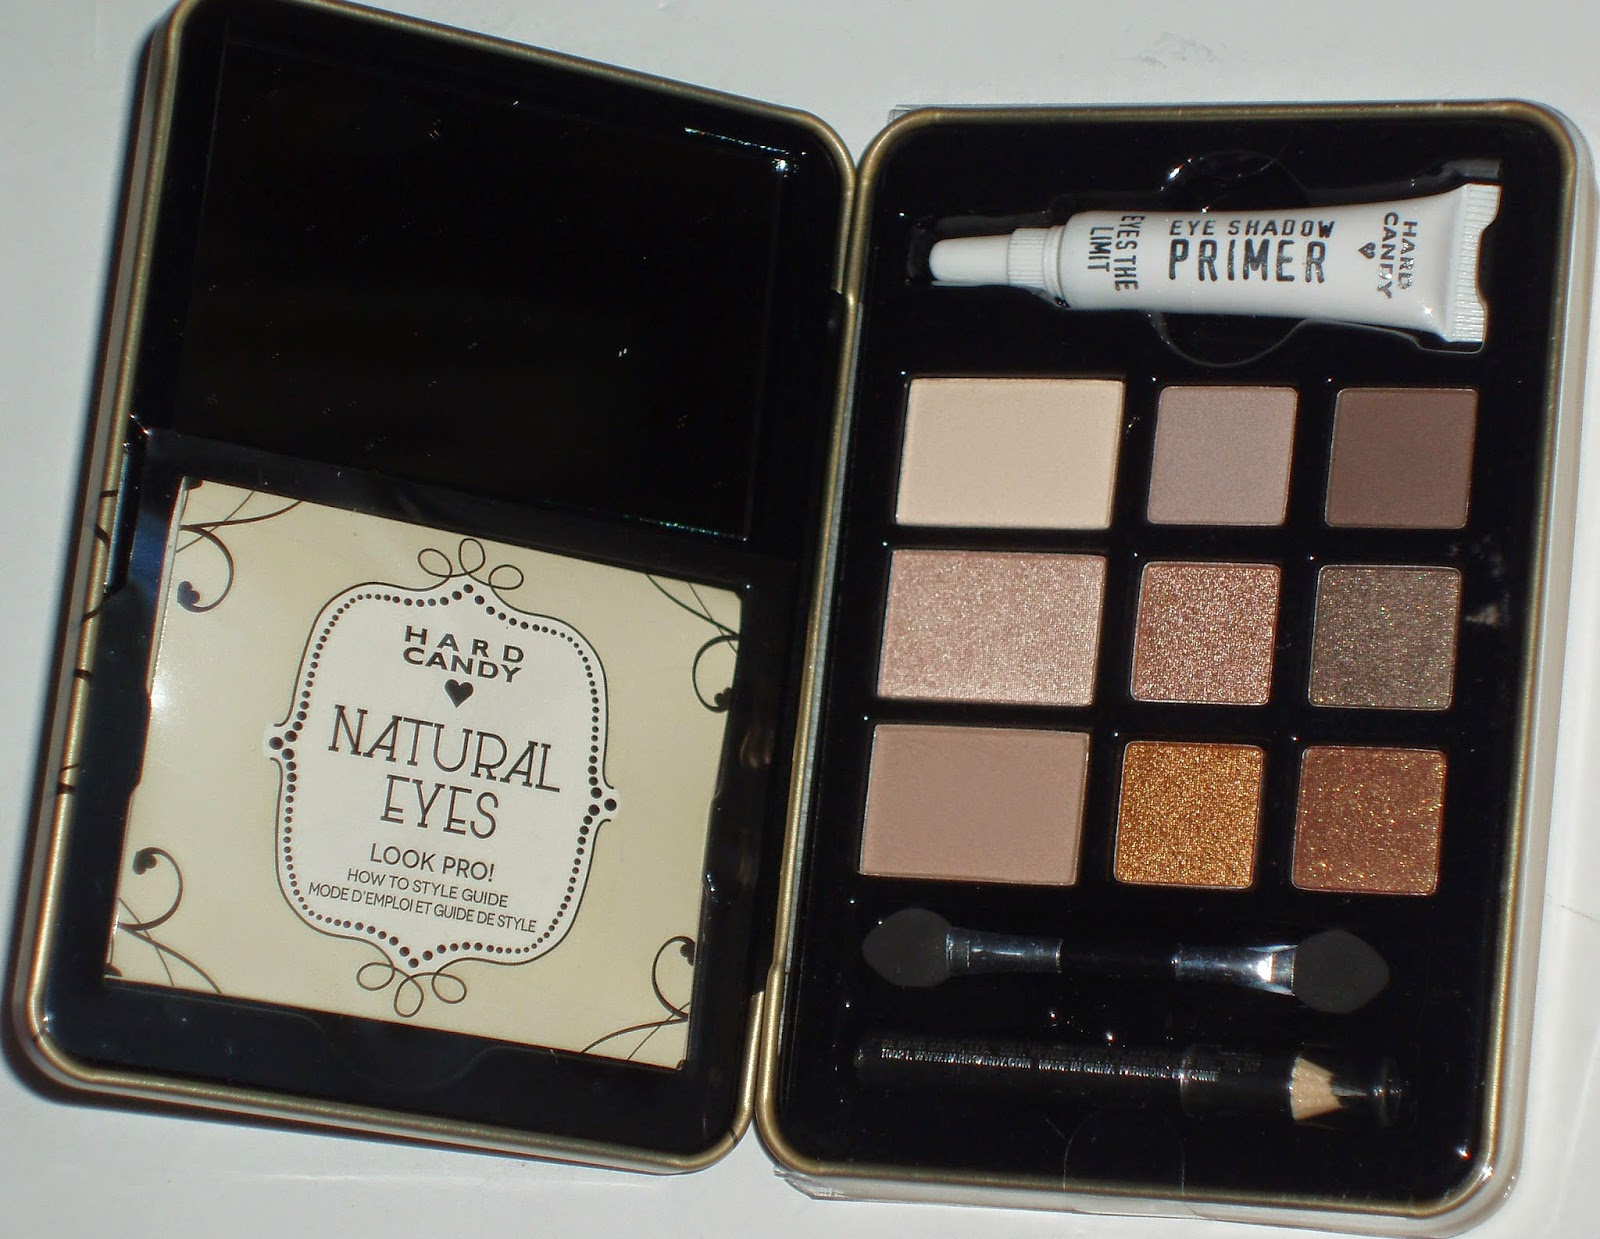 Hard Candy Spring 2015 Eyeshadow Remember I Mentioned The Sneak Peak Of These Palettes In A Flyer Deal Post Before